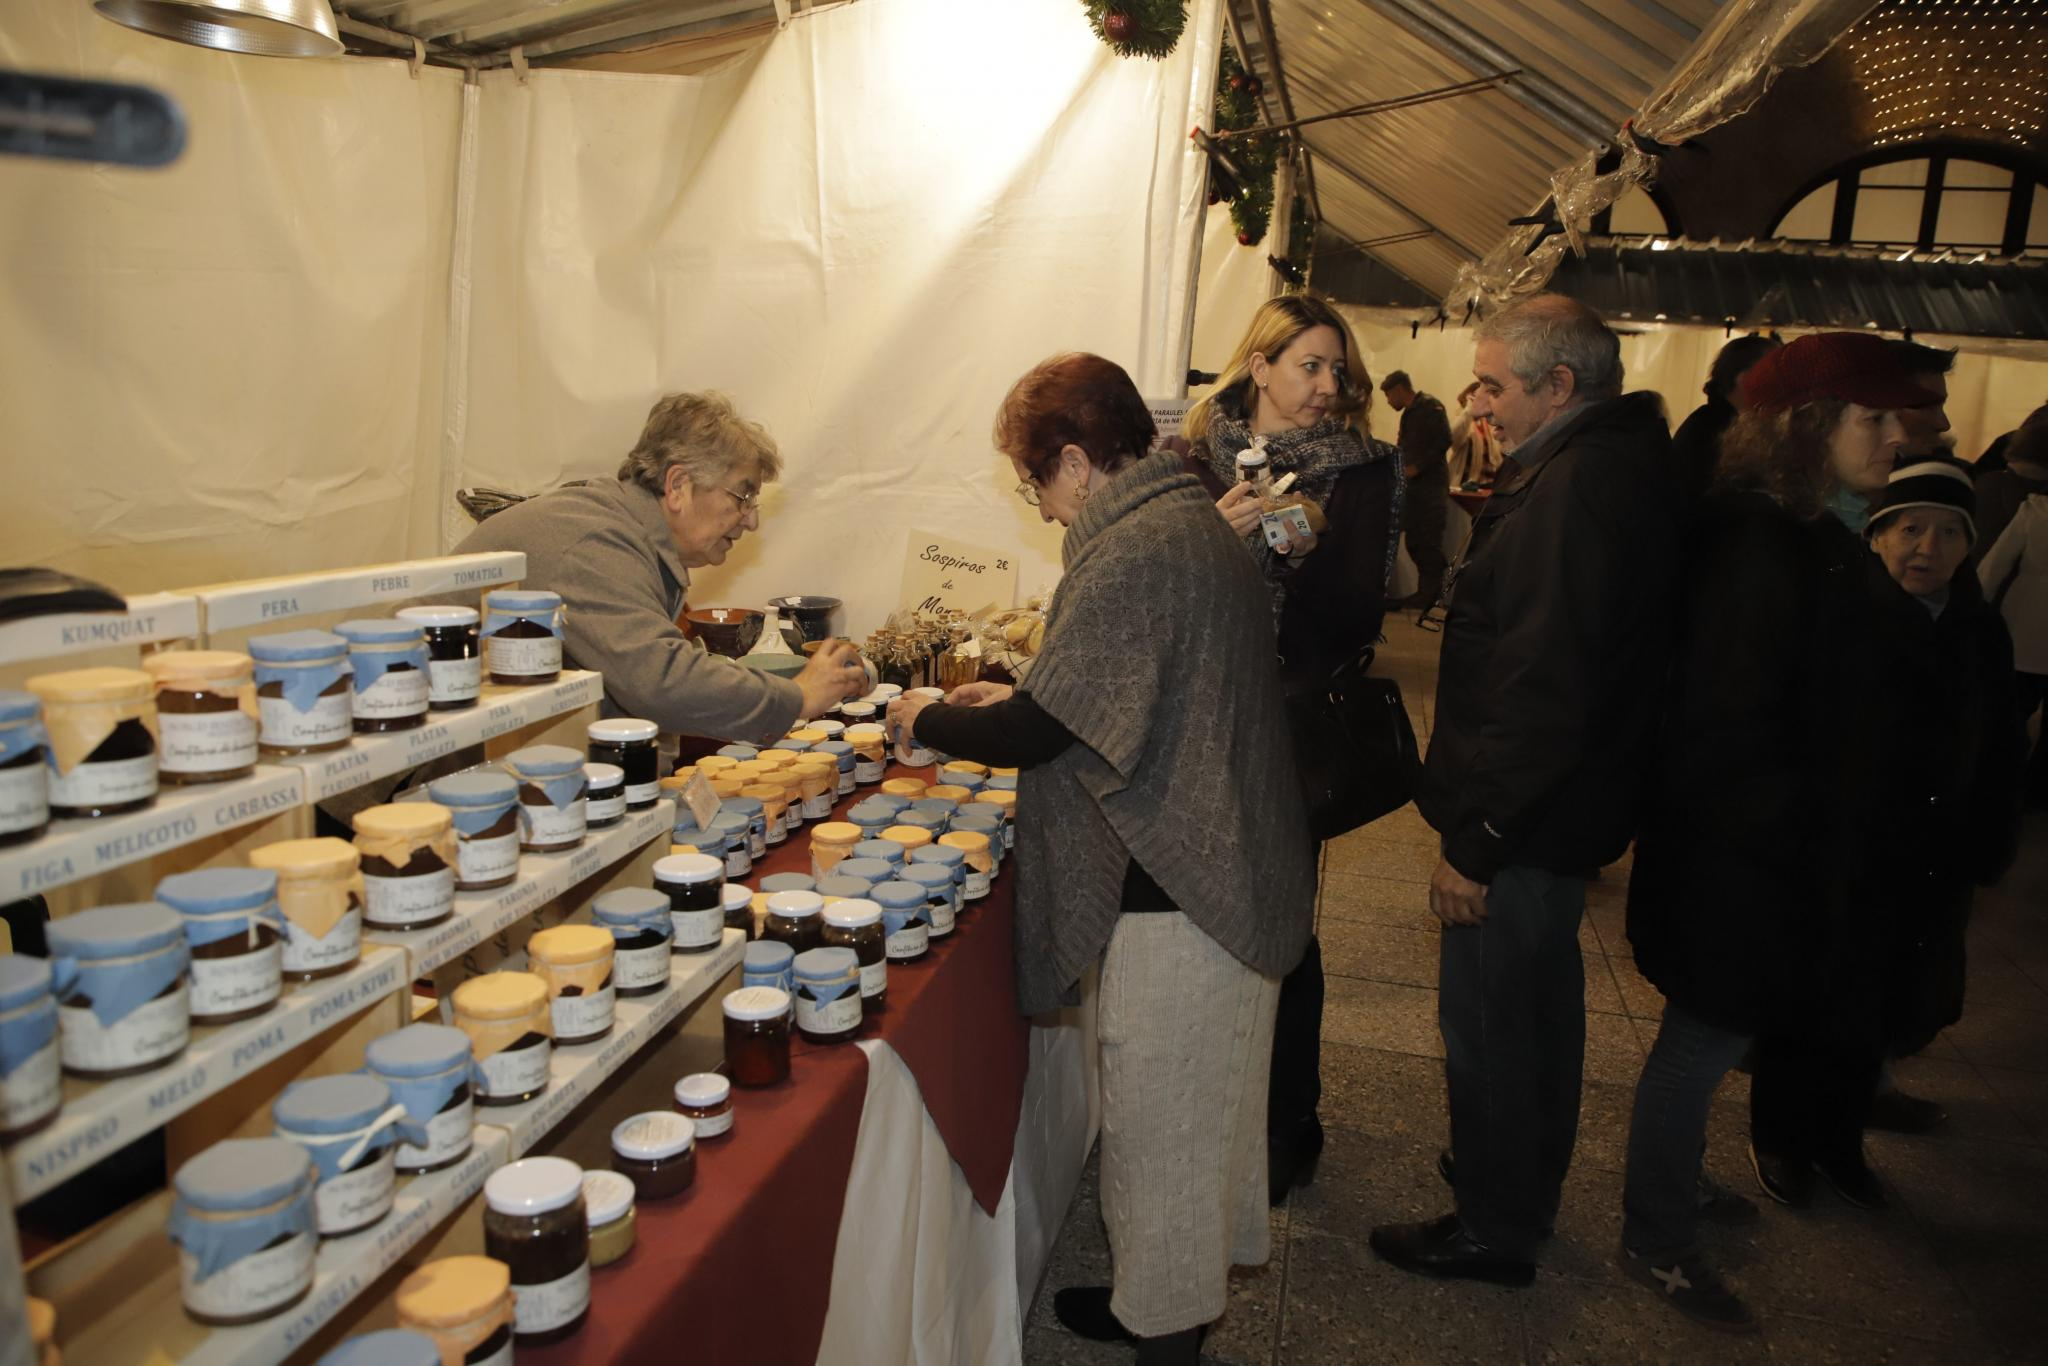 A whole range of irresistible, mouth-watering delicacies like nougat, pastries, sweets, marzipans and jams on offer.y belenes.